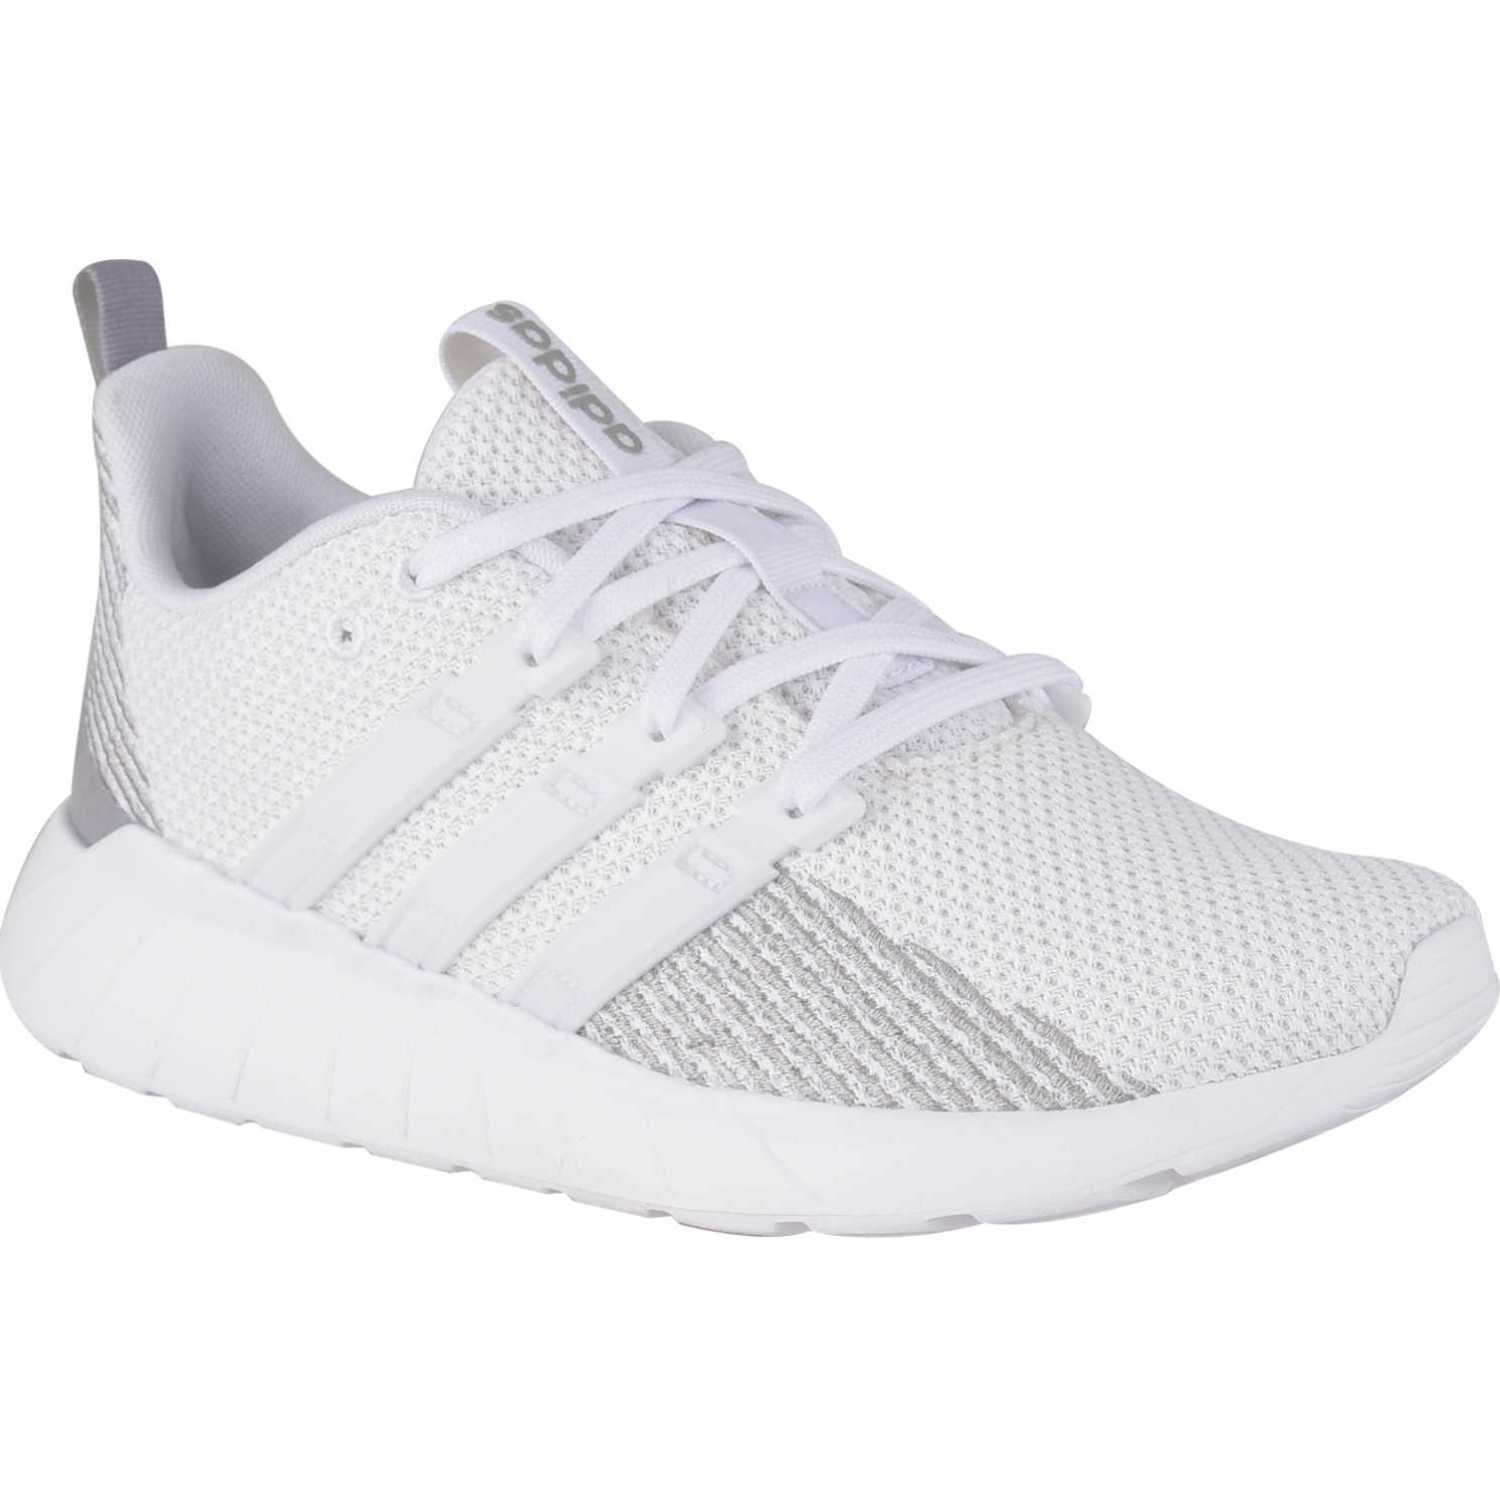 Adidas questar flow Blanco Running en pista